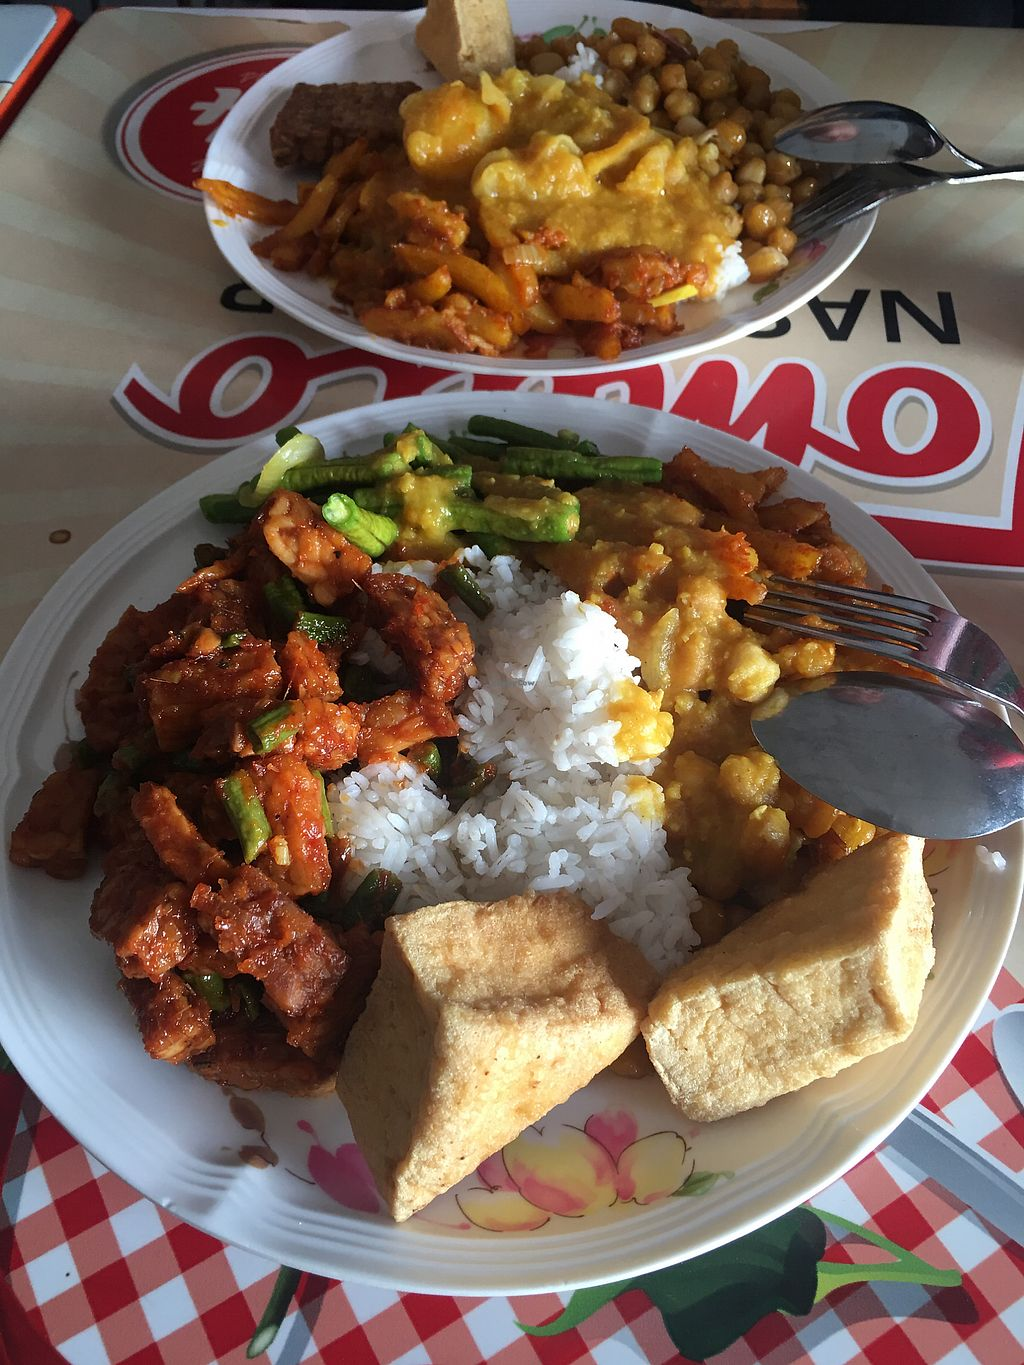 """Photo of Tomato Nasi Kandar  by <a href=""""/members/profile/joonas"""">joonas</a> <br/>Fried Tofu, tempeh penyet, dal and veg from the self-serve buffet. Huge portion cost around 9 RM (2€)  <br/> October 21, 2017  - <a href='/contact/abuse/image/38106/317181'>Report</a>"""